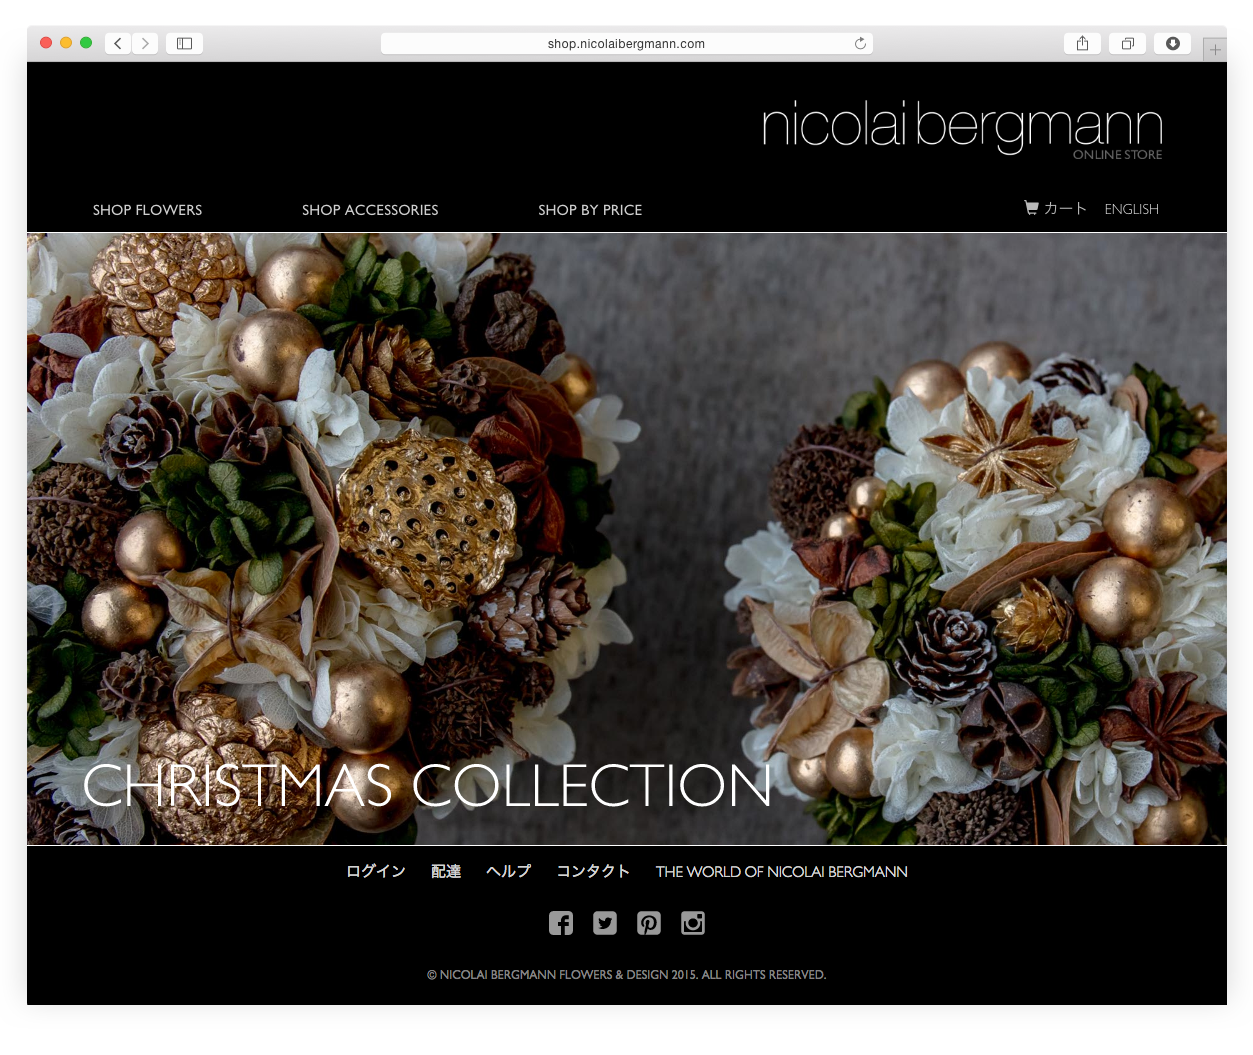 Nicolai Bergmann E-commerce store home page